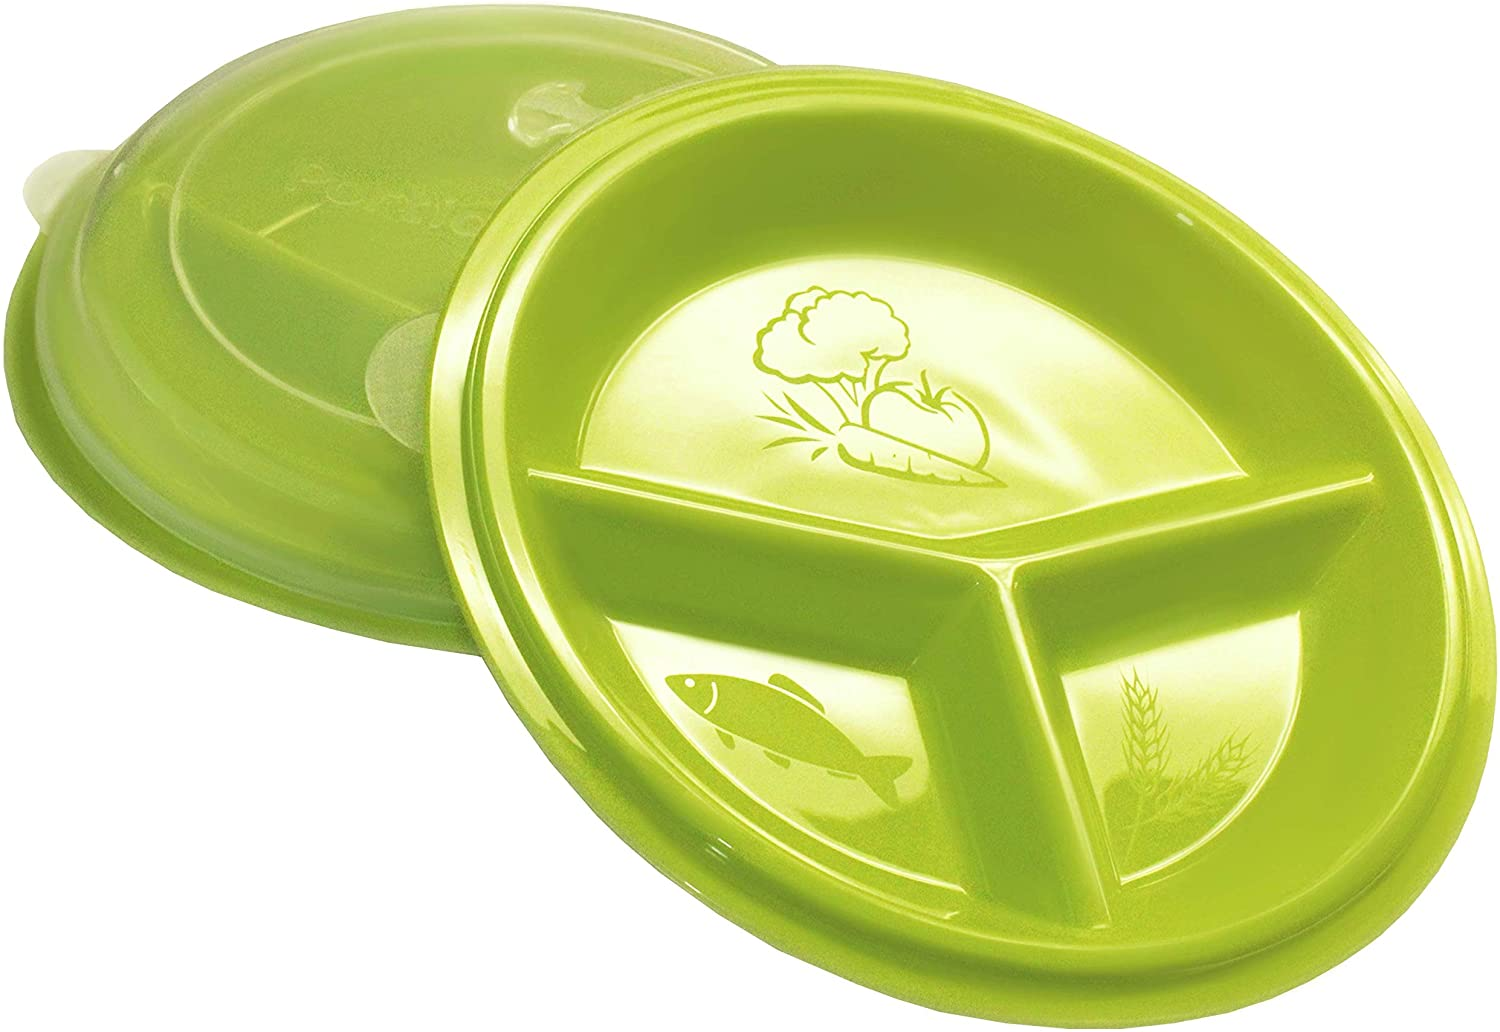 Rehabilitation Direct stock discount Advantage 3 Compartment Portion S Max 74% OFF Plate Lid with